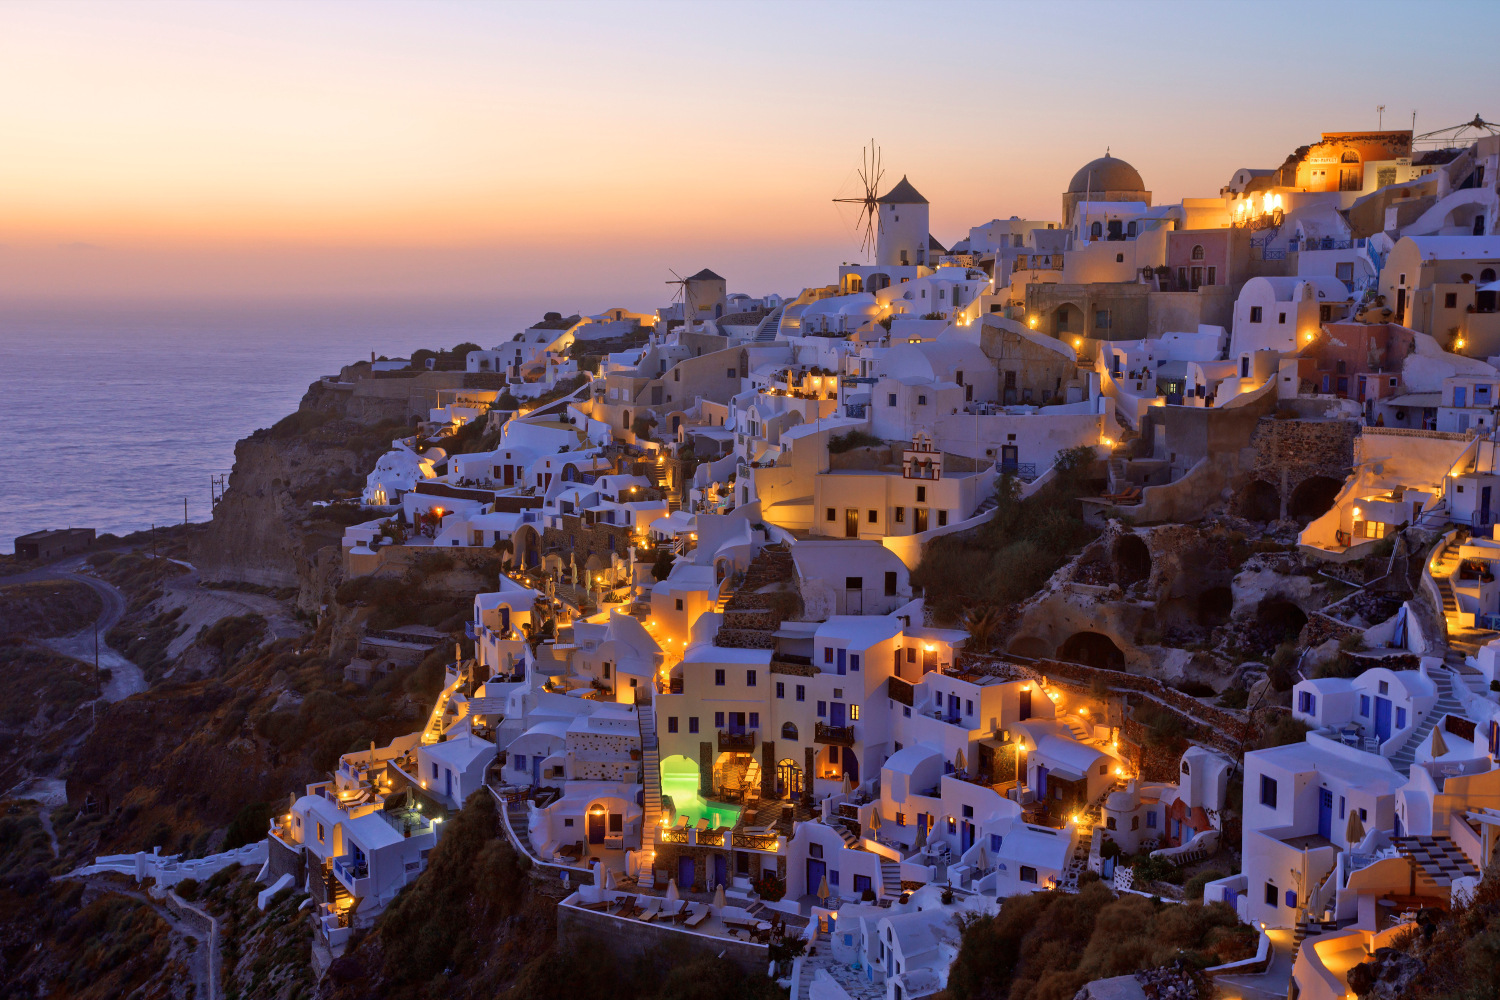 Santorini travel guide for first-time visitors - Best Places to Visit in Europe - planningforeurope.com (4)